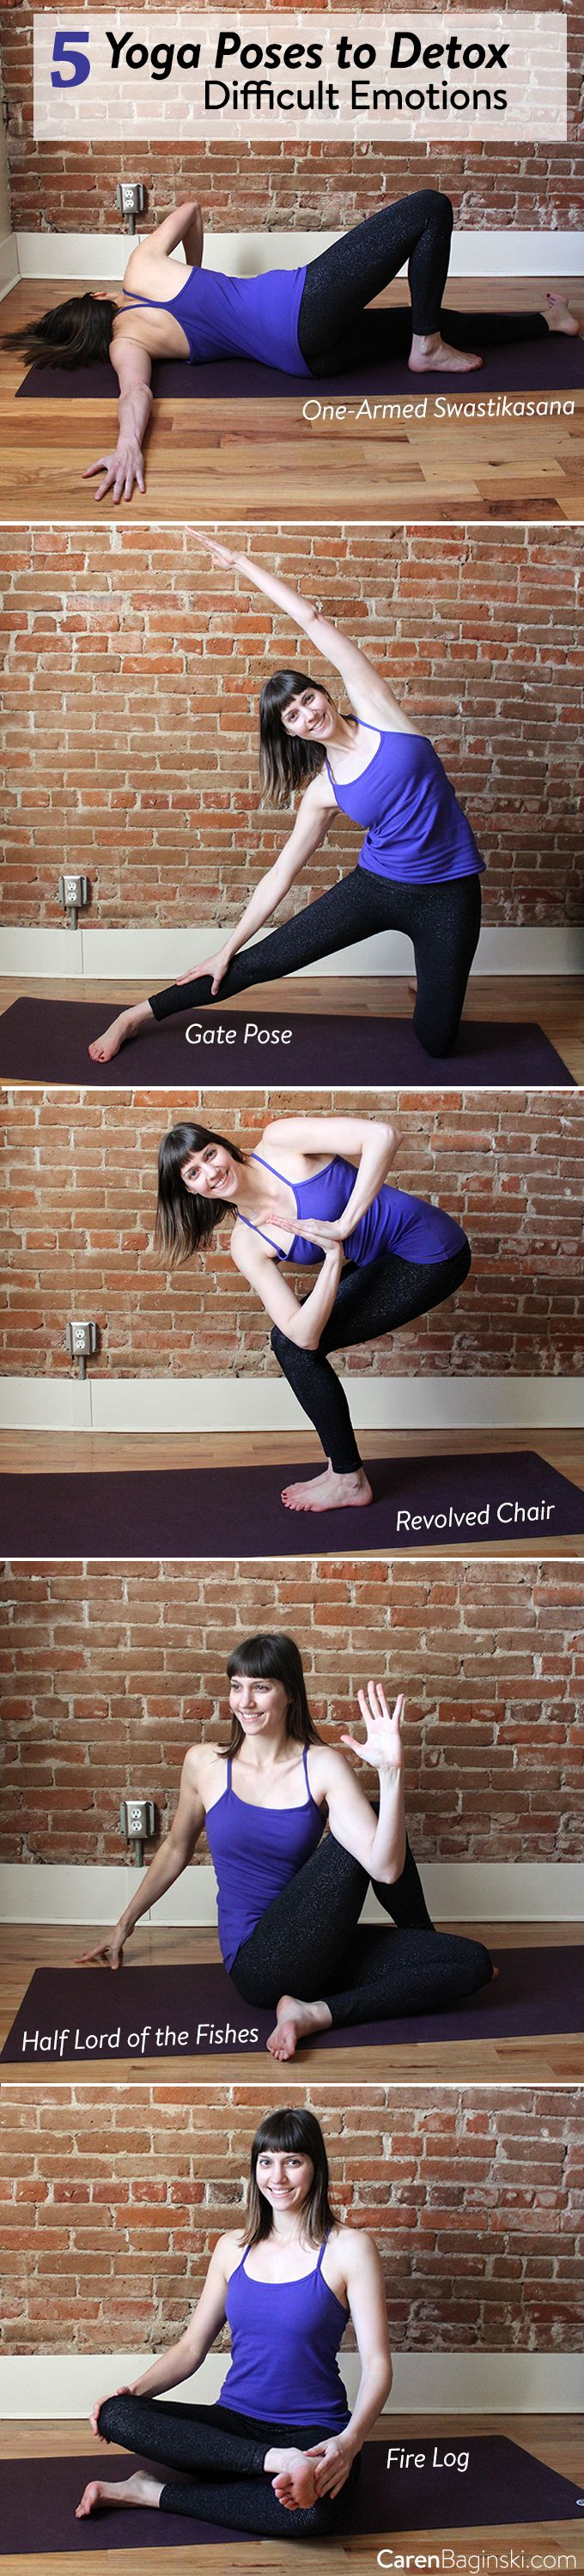 Release difficult emotions such as self-doubt, fear and anxiety through this simple yoga pose sequence to create a more confident mind and body.